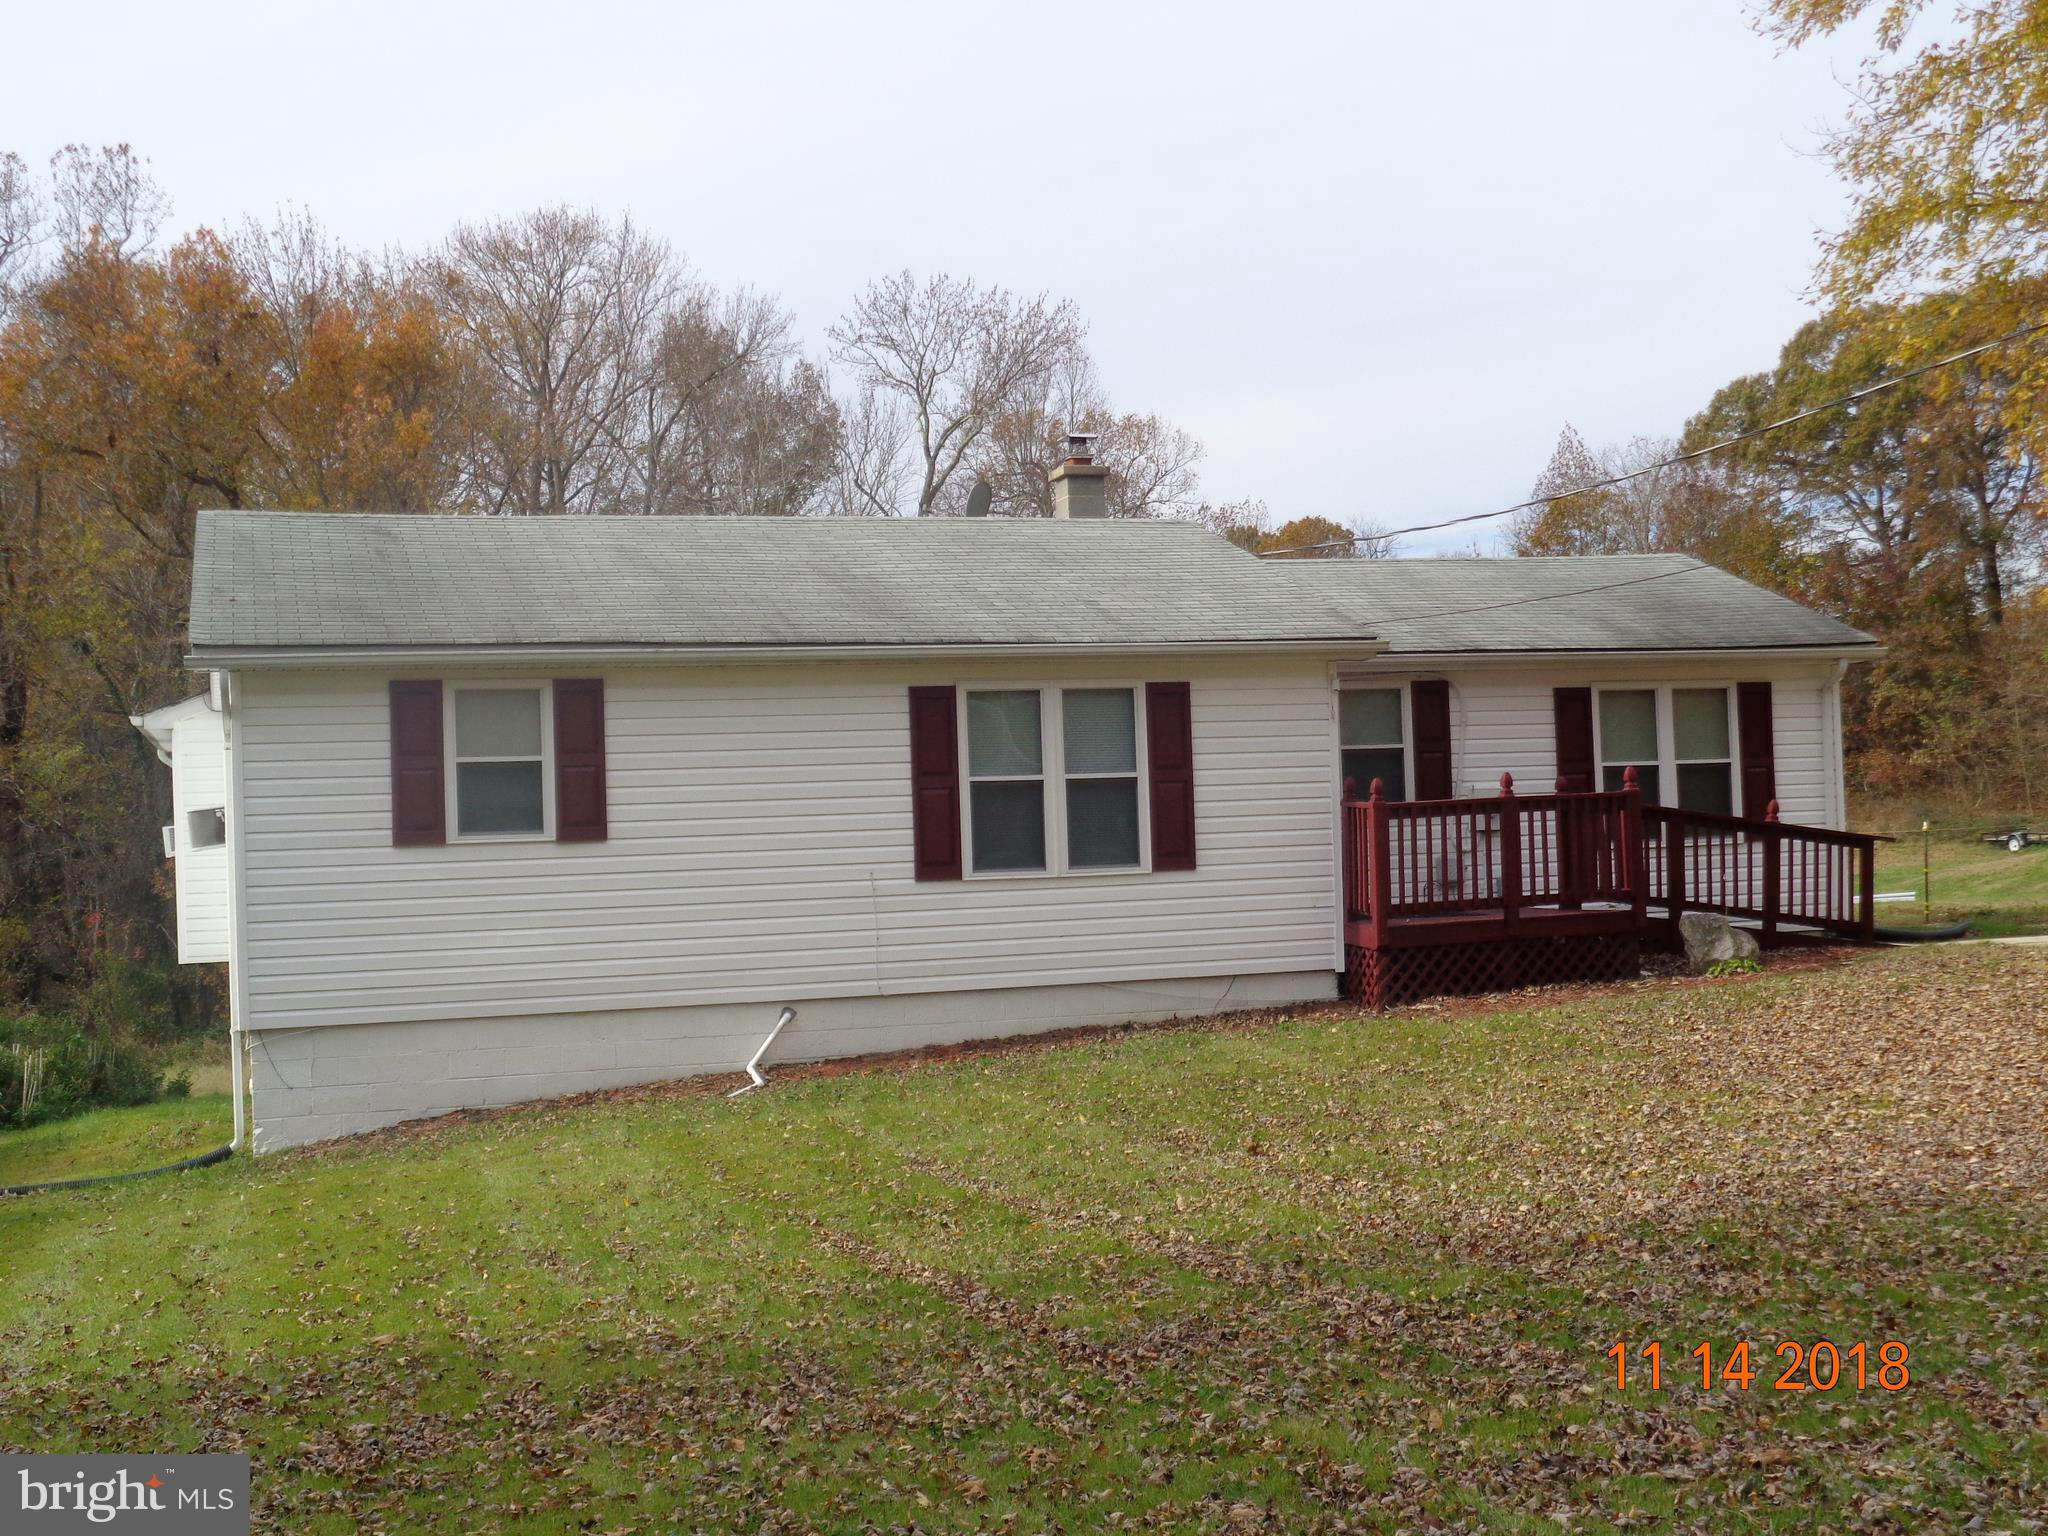 A rare find!  Large and lovely home on over 1 acre.  Super clean and well cared for.  Big bright liv